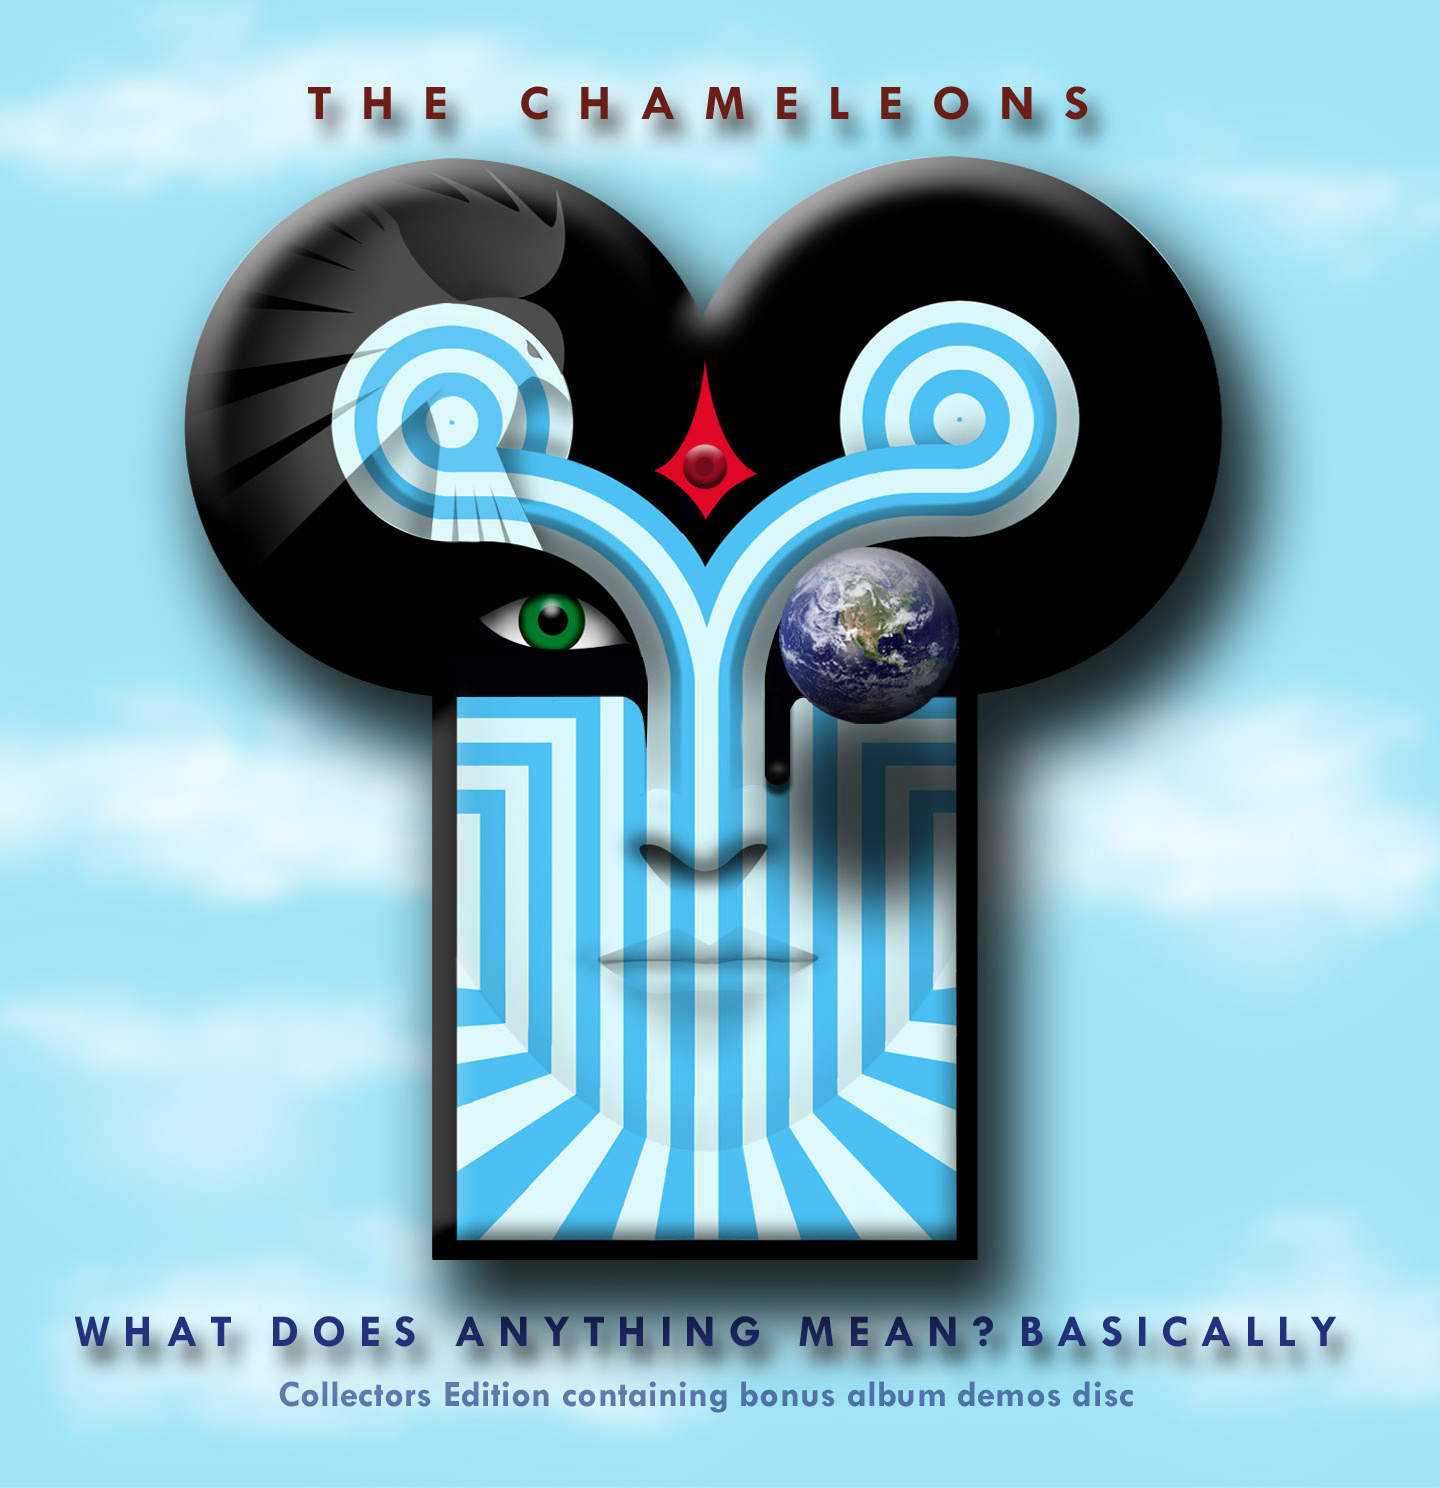 The Chameleons reissuing 1985's 'What Does Anything Mean? Basically' with 10 bonus demos